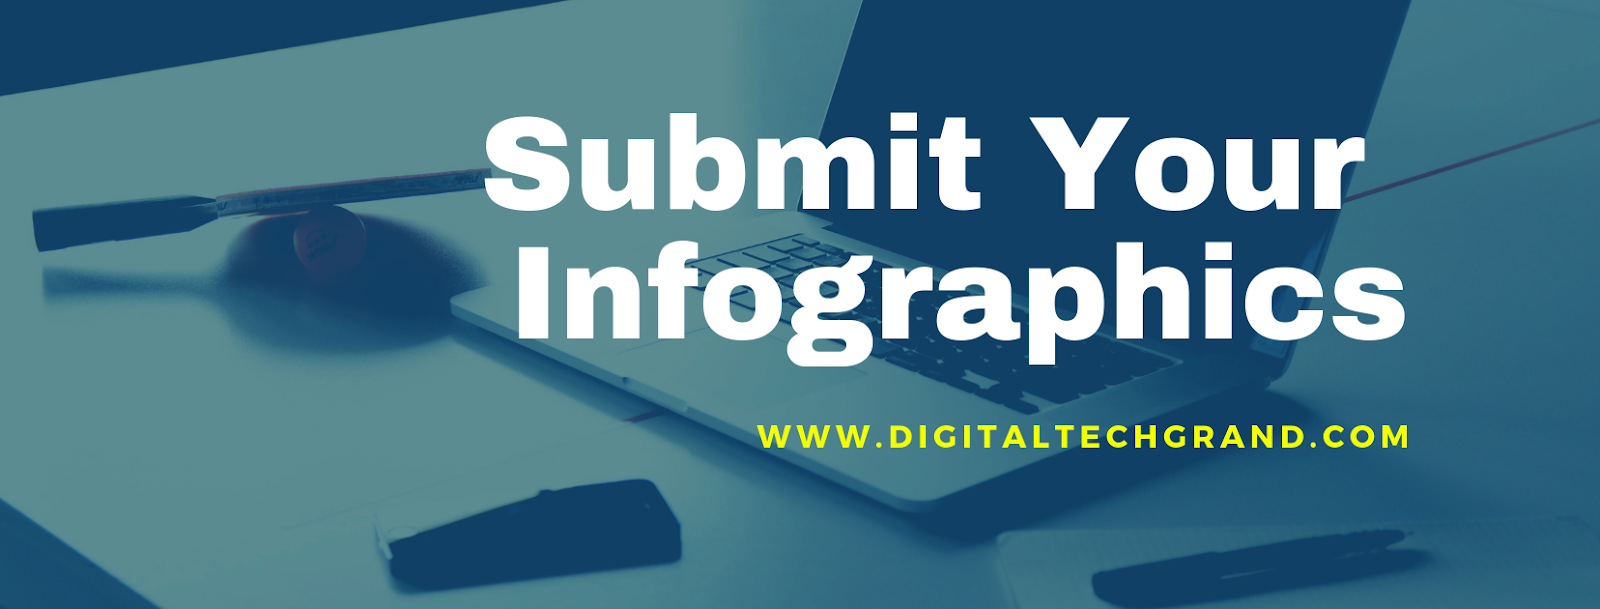 submit/add infographic